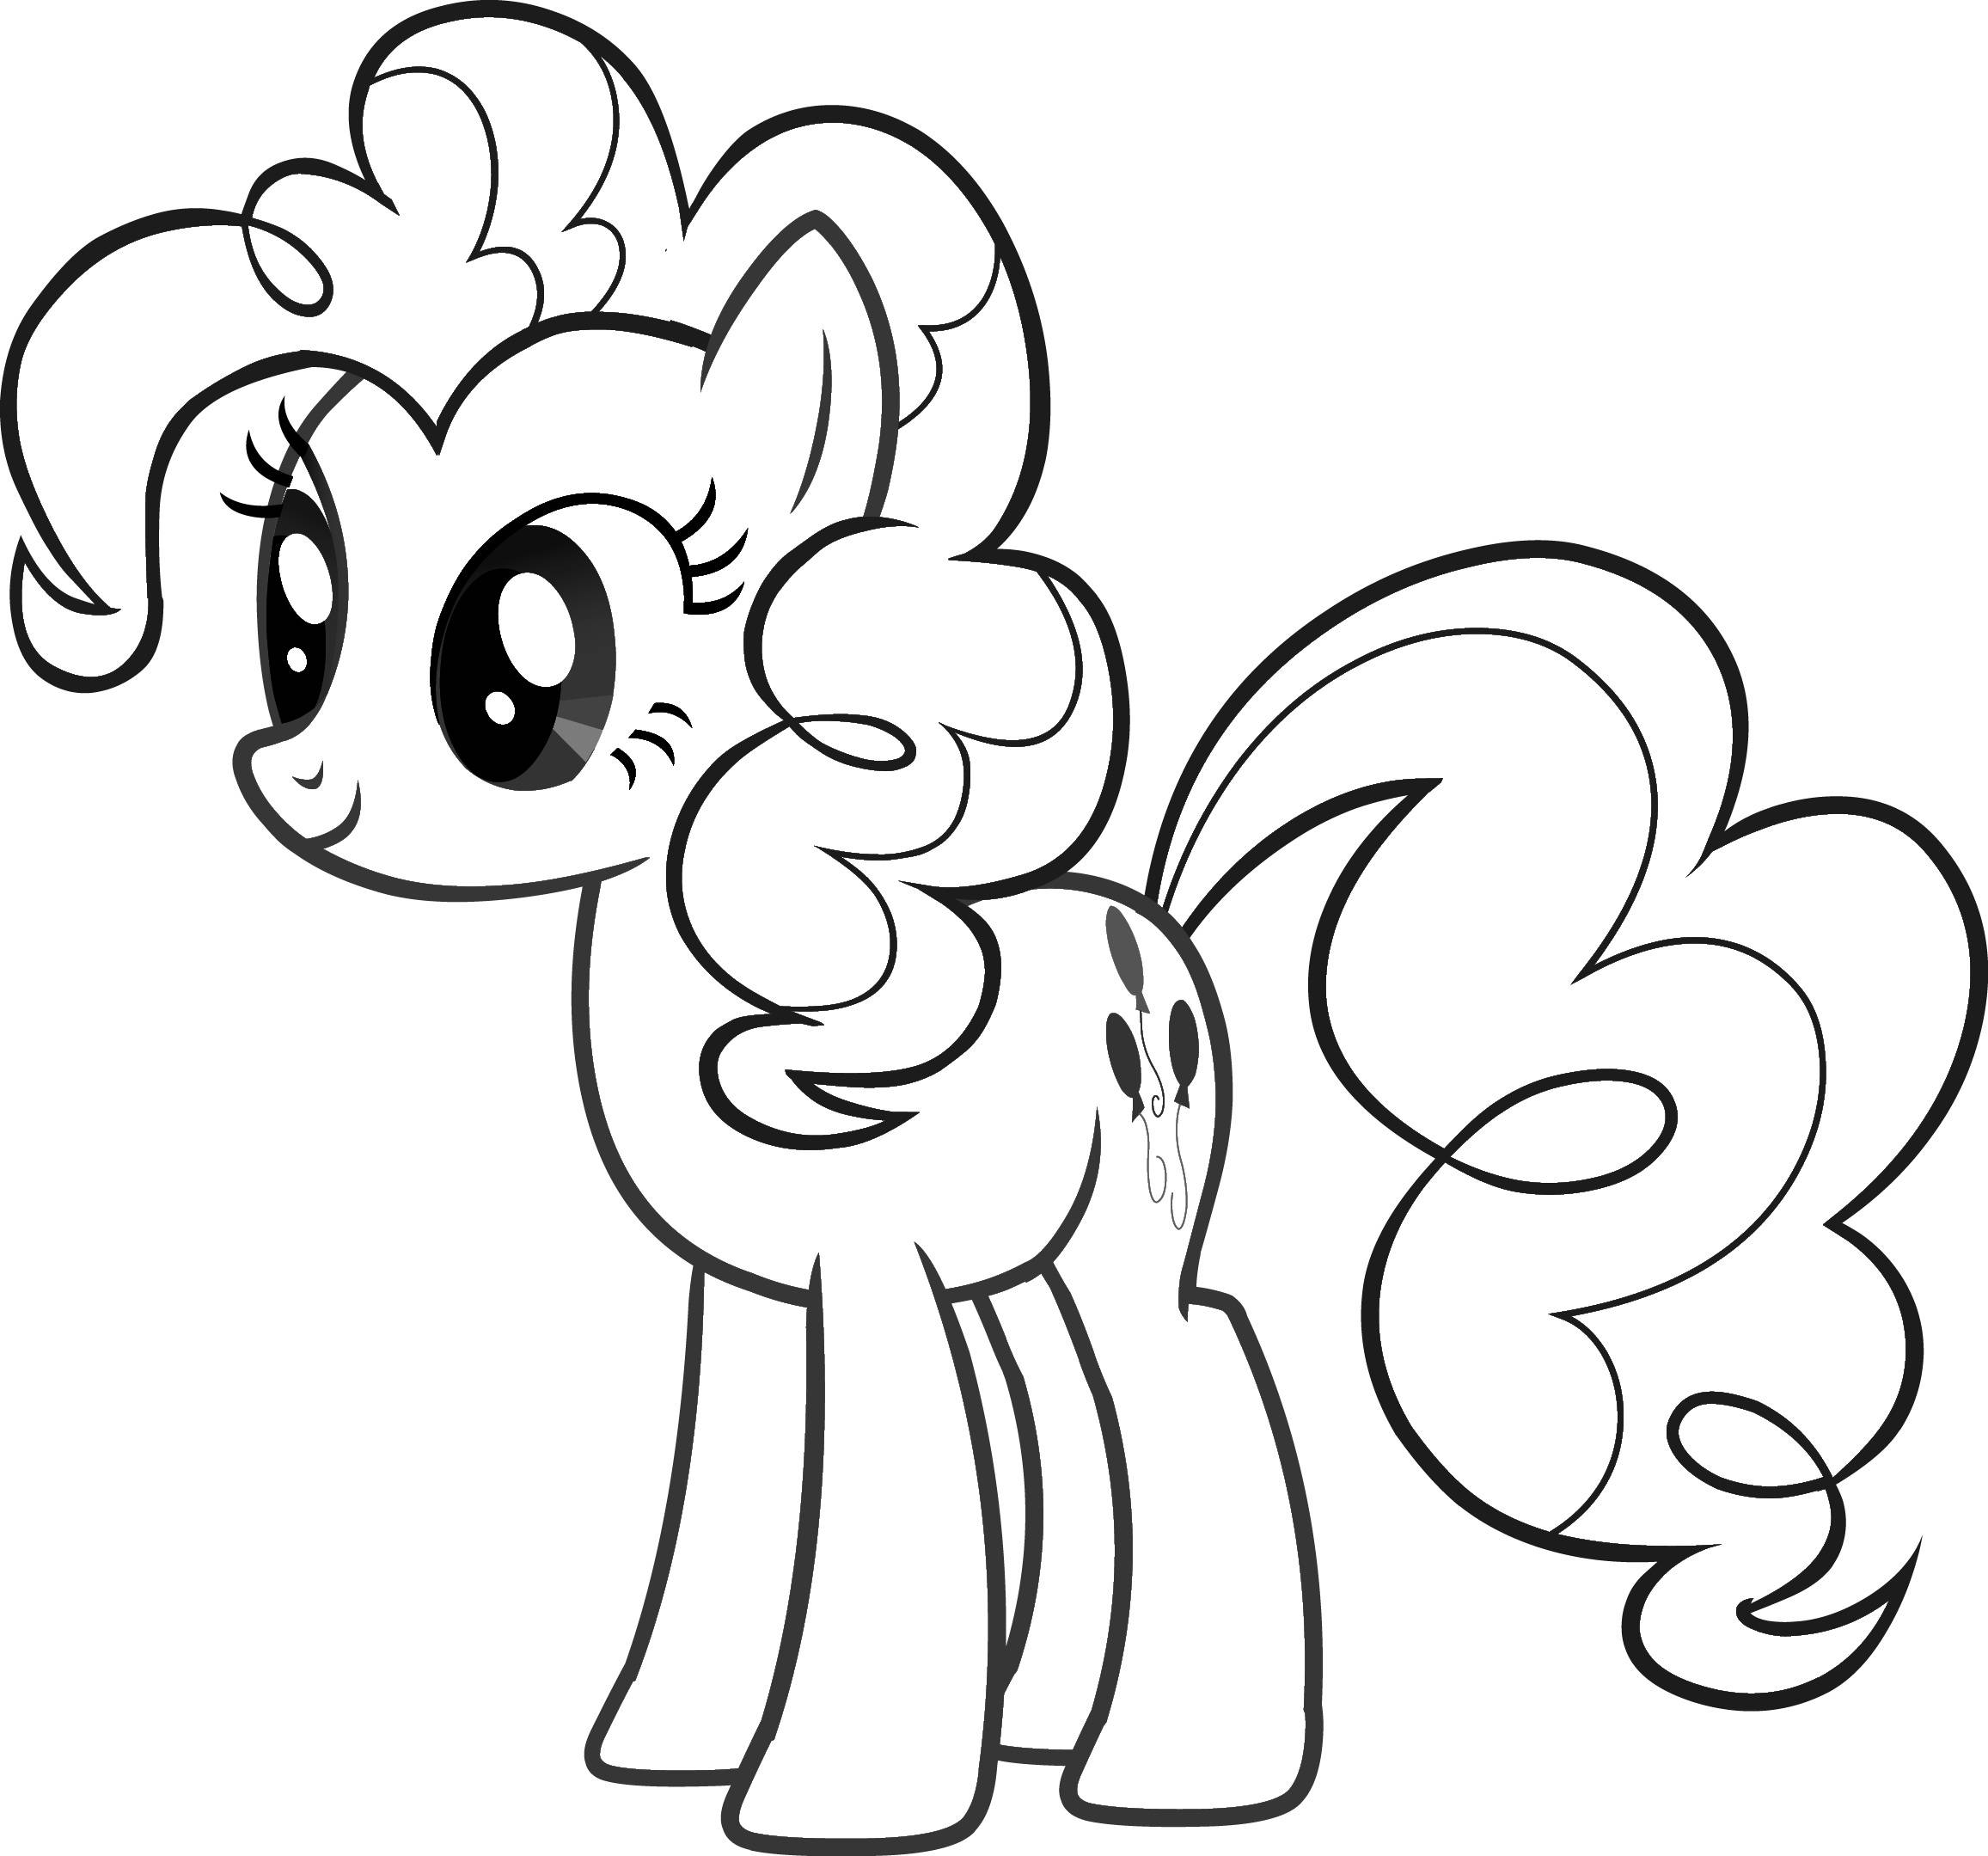 Free coloring pages - My Little Pony Coloring Pages